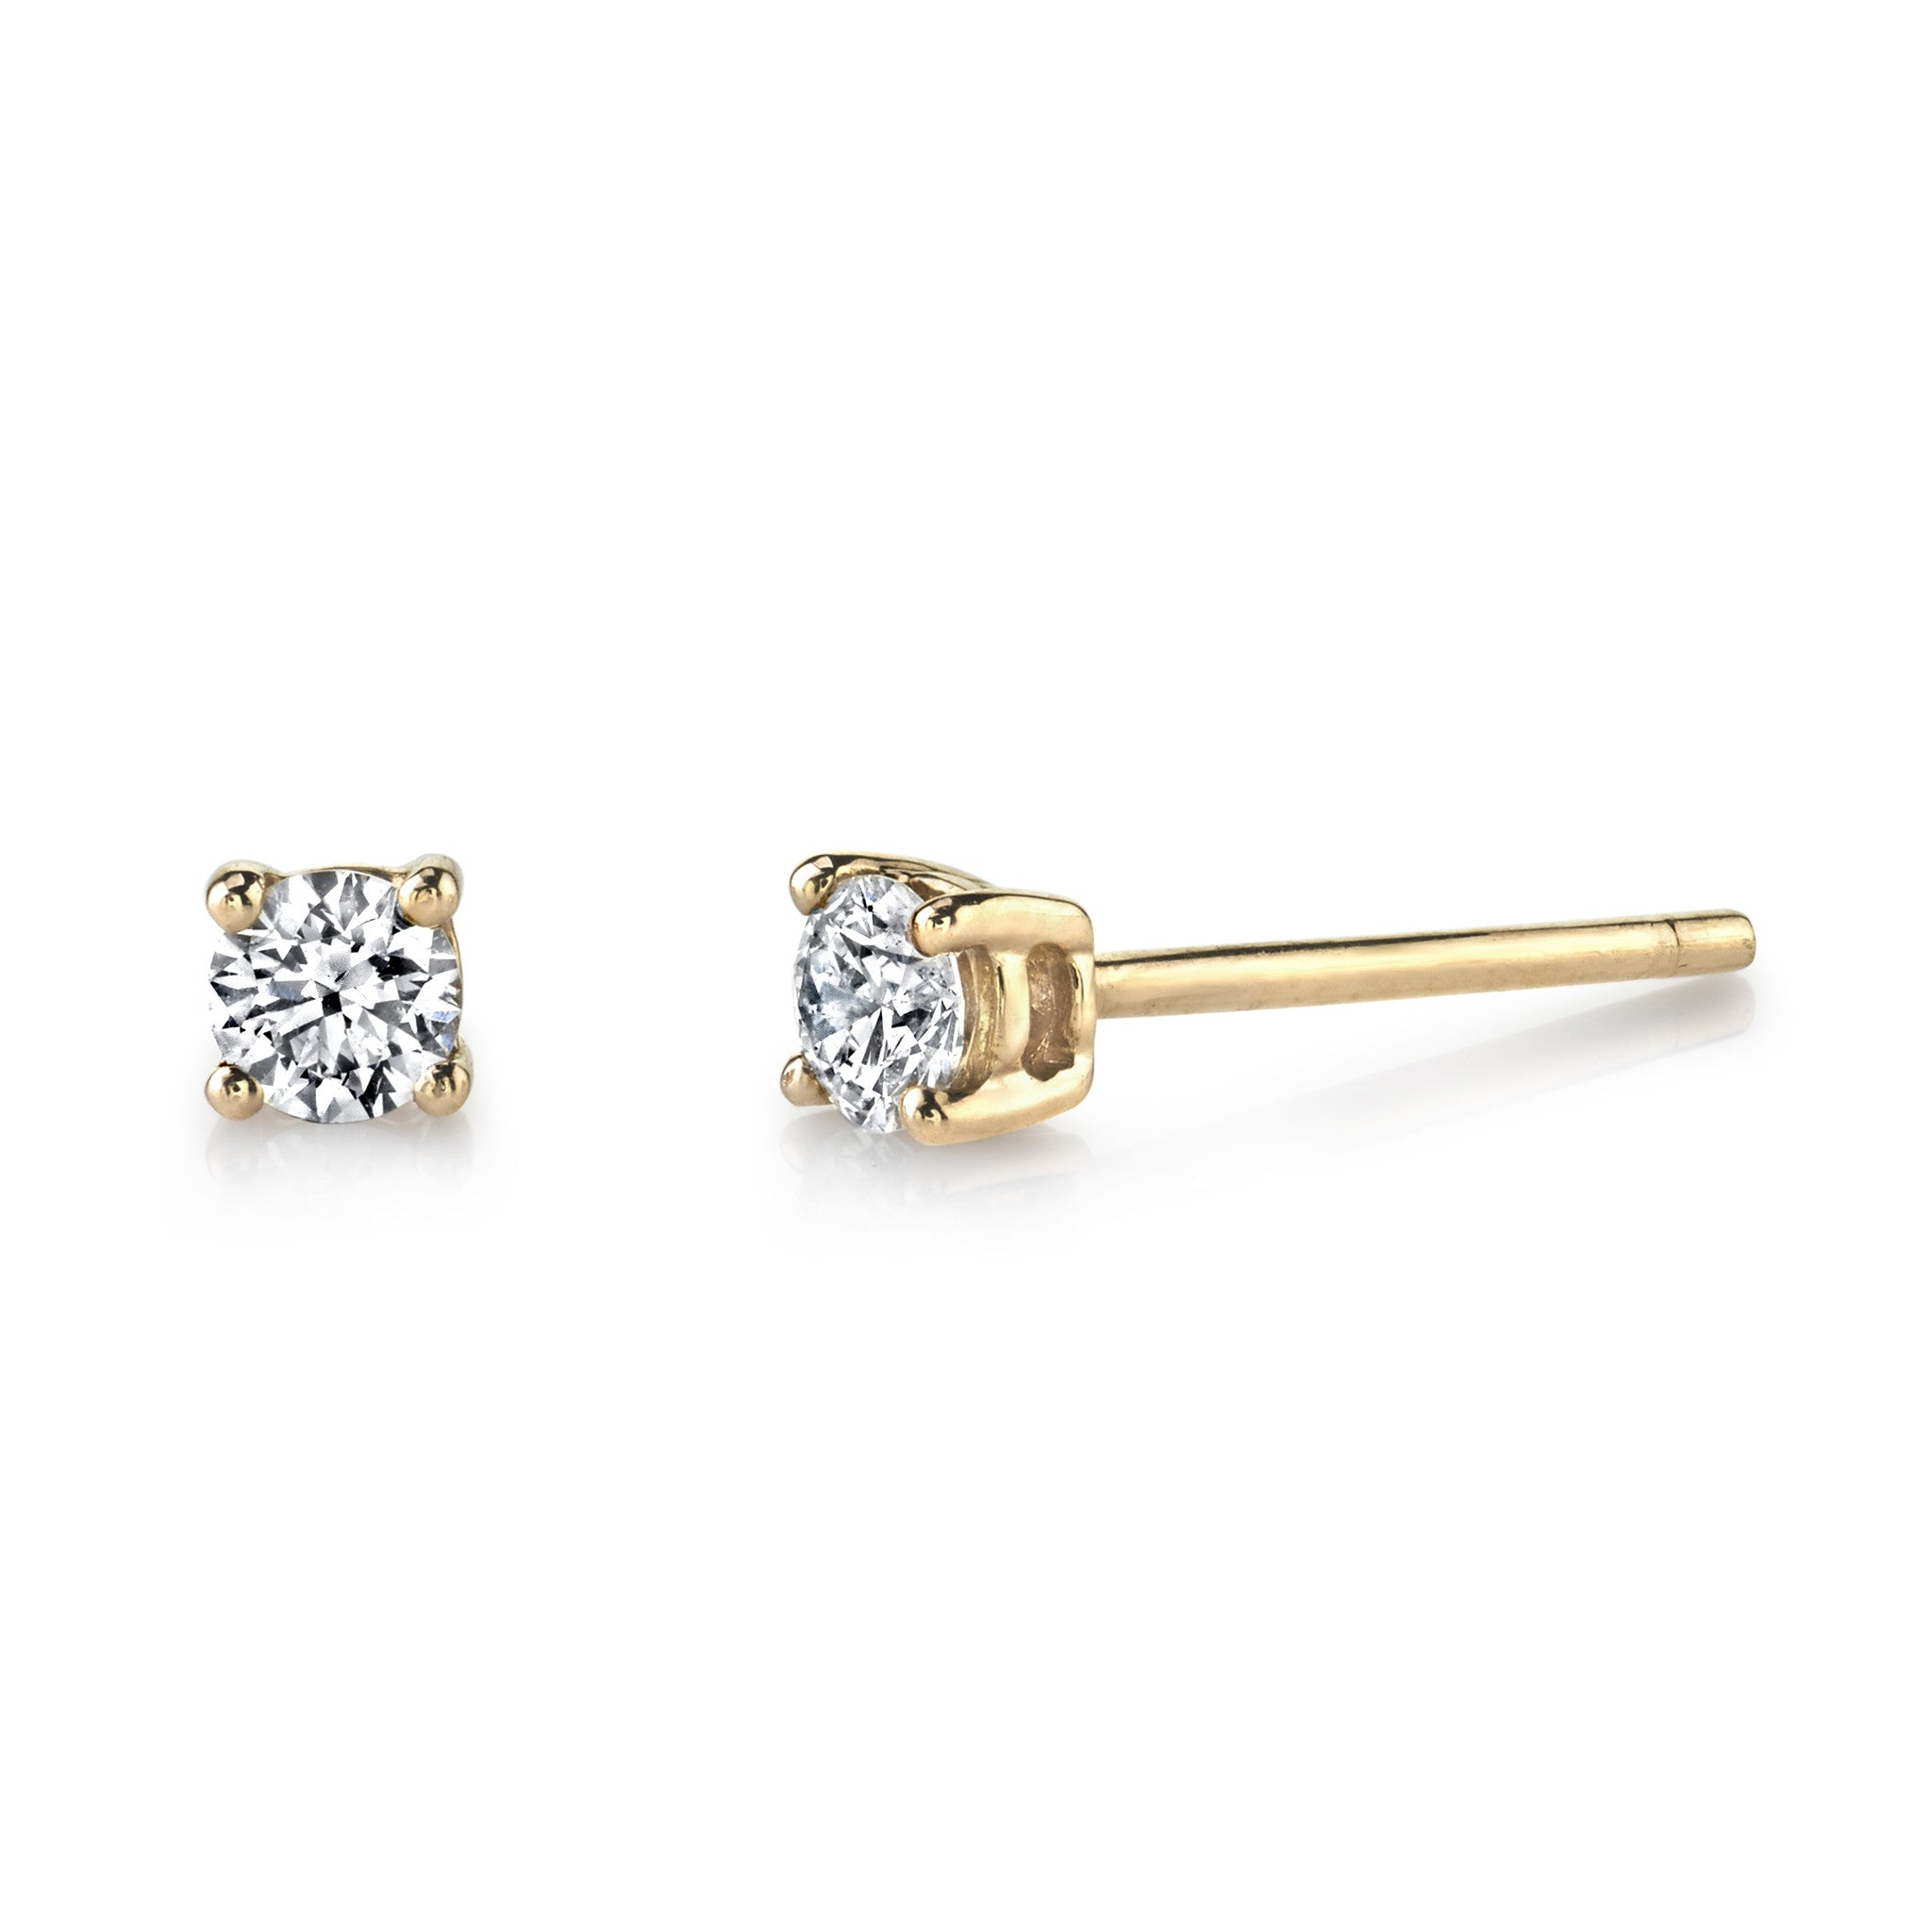 jewellery shop stud charles diamond pave jewelry earrings son atlantico schwartz studs